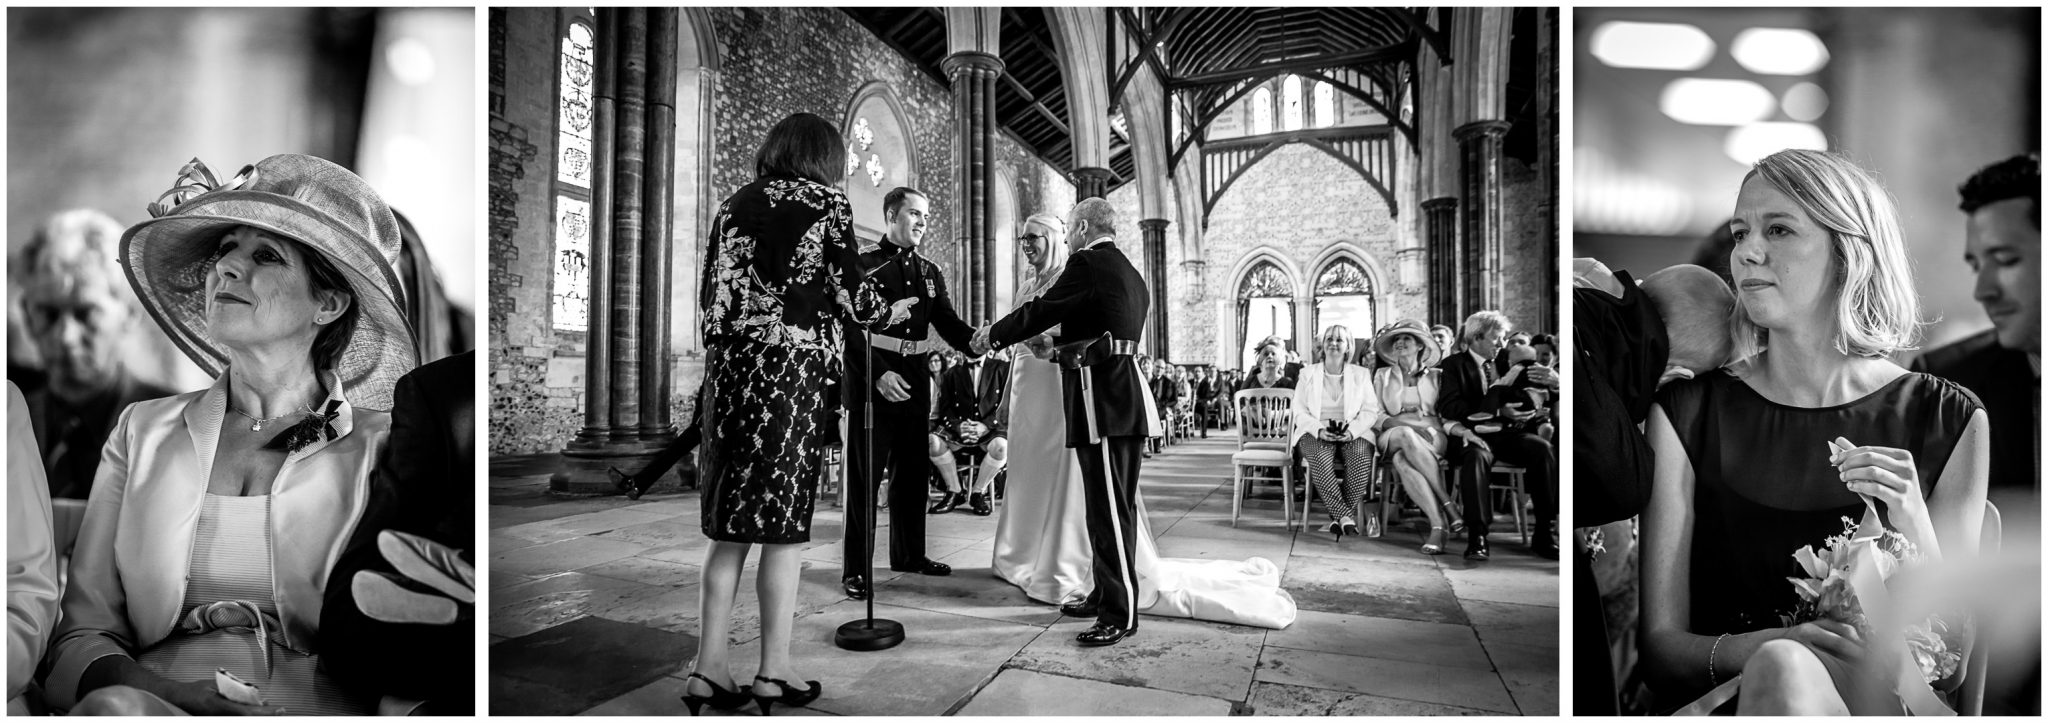 Winchester Great Hall wedding photography bride's father shakes groom's hand as guests watch